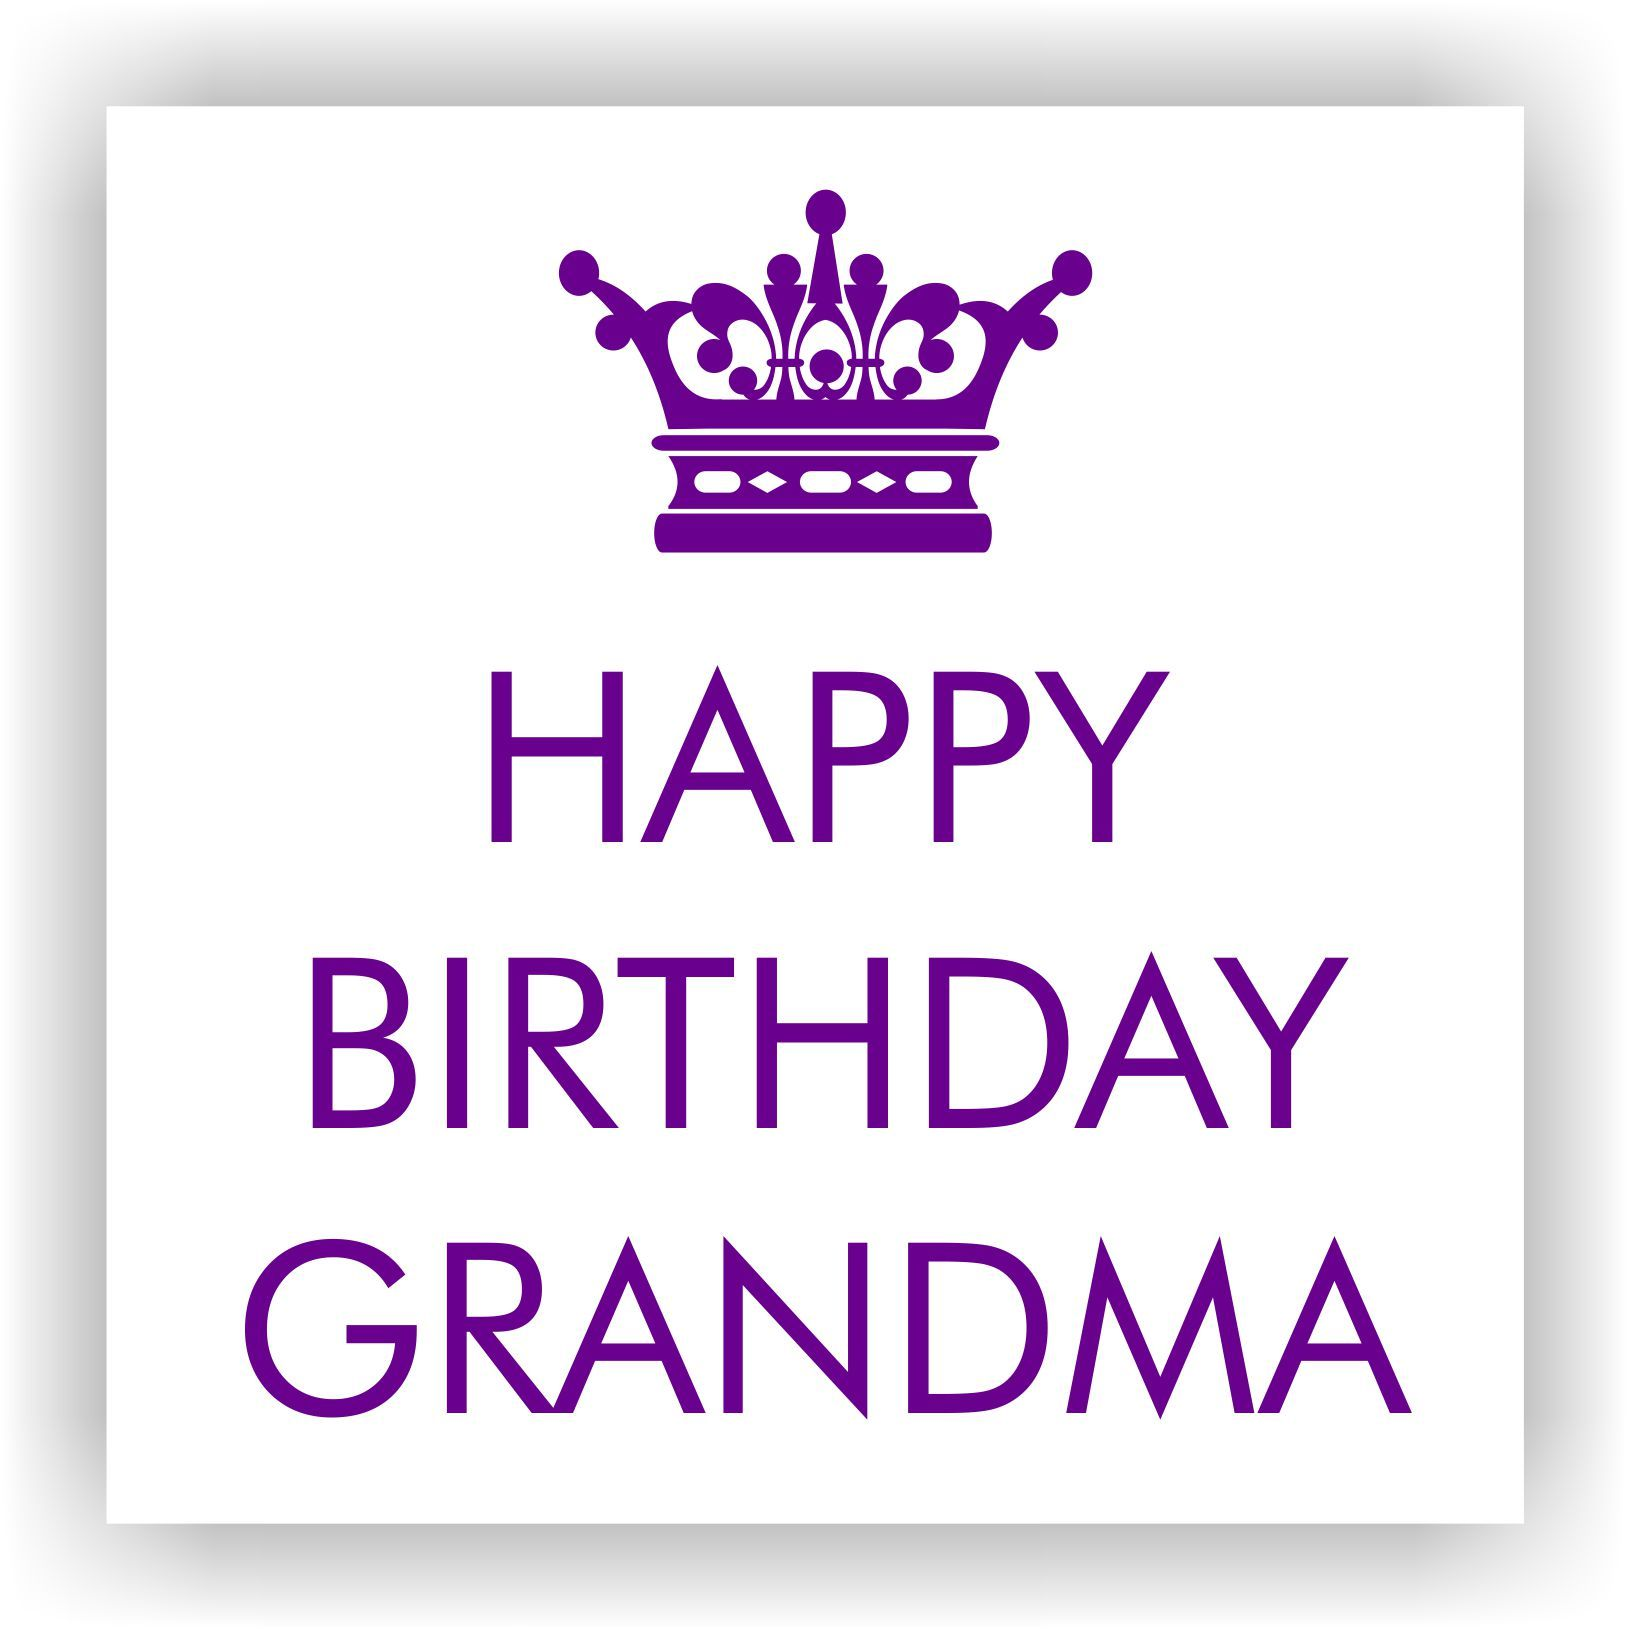 info queenb Happy Birthday Grandma charity greeting card Just